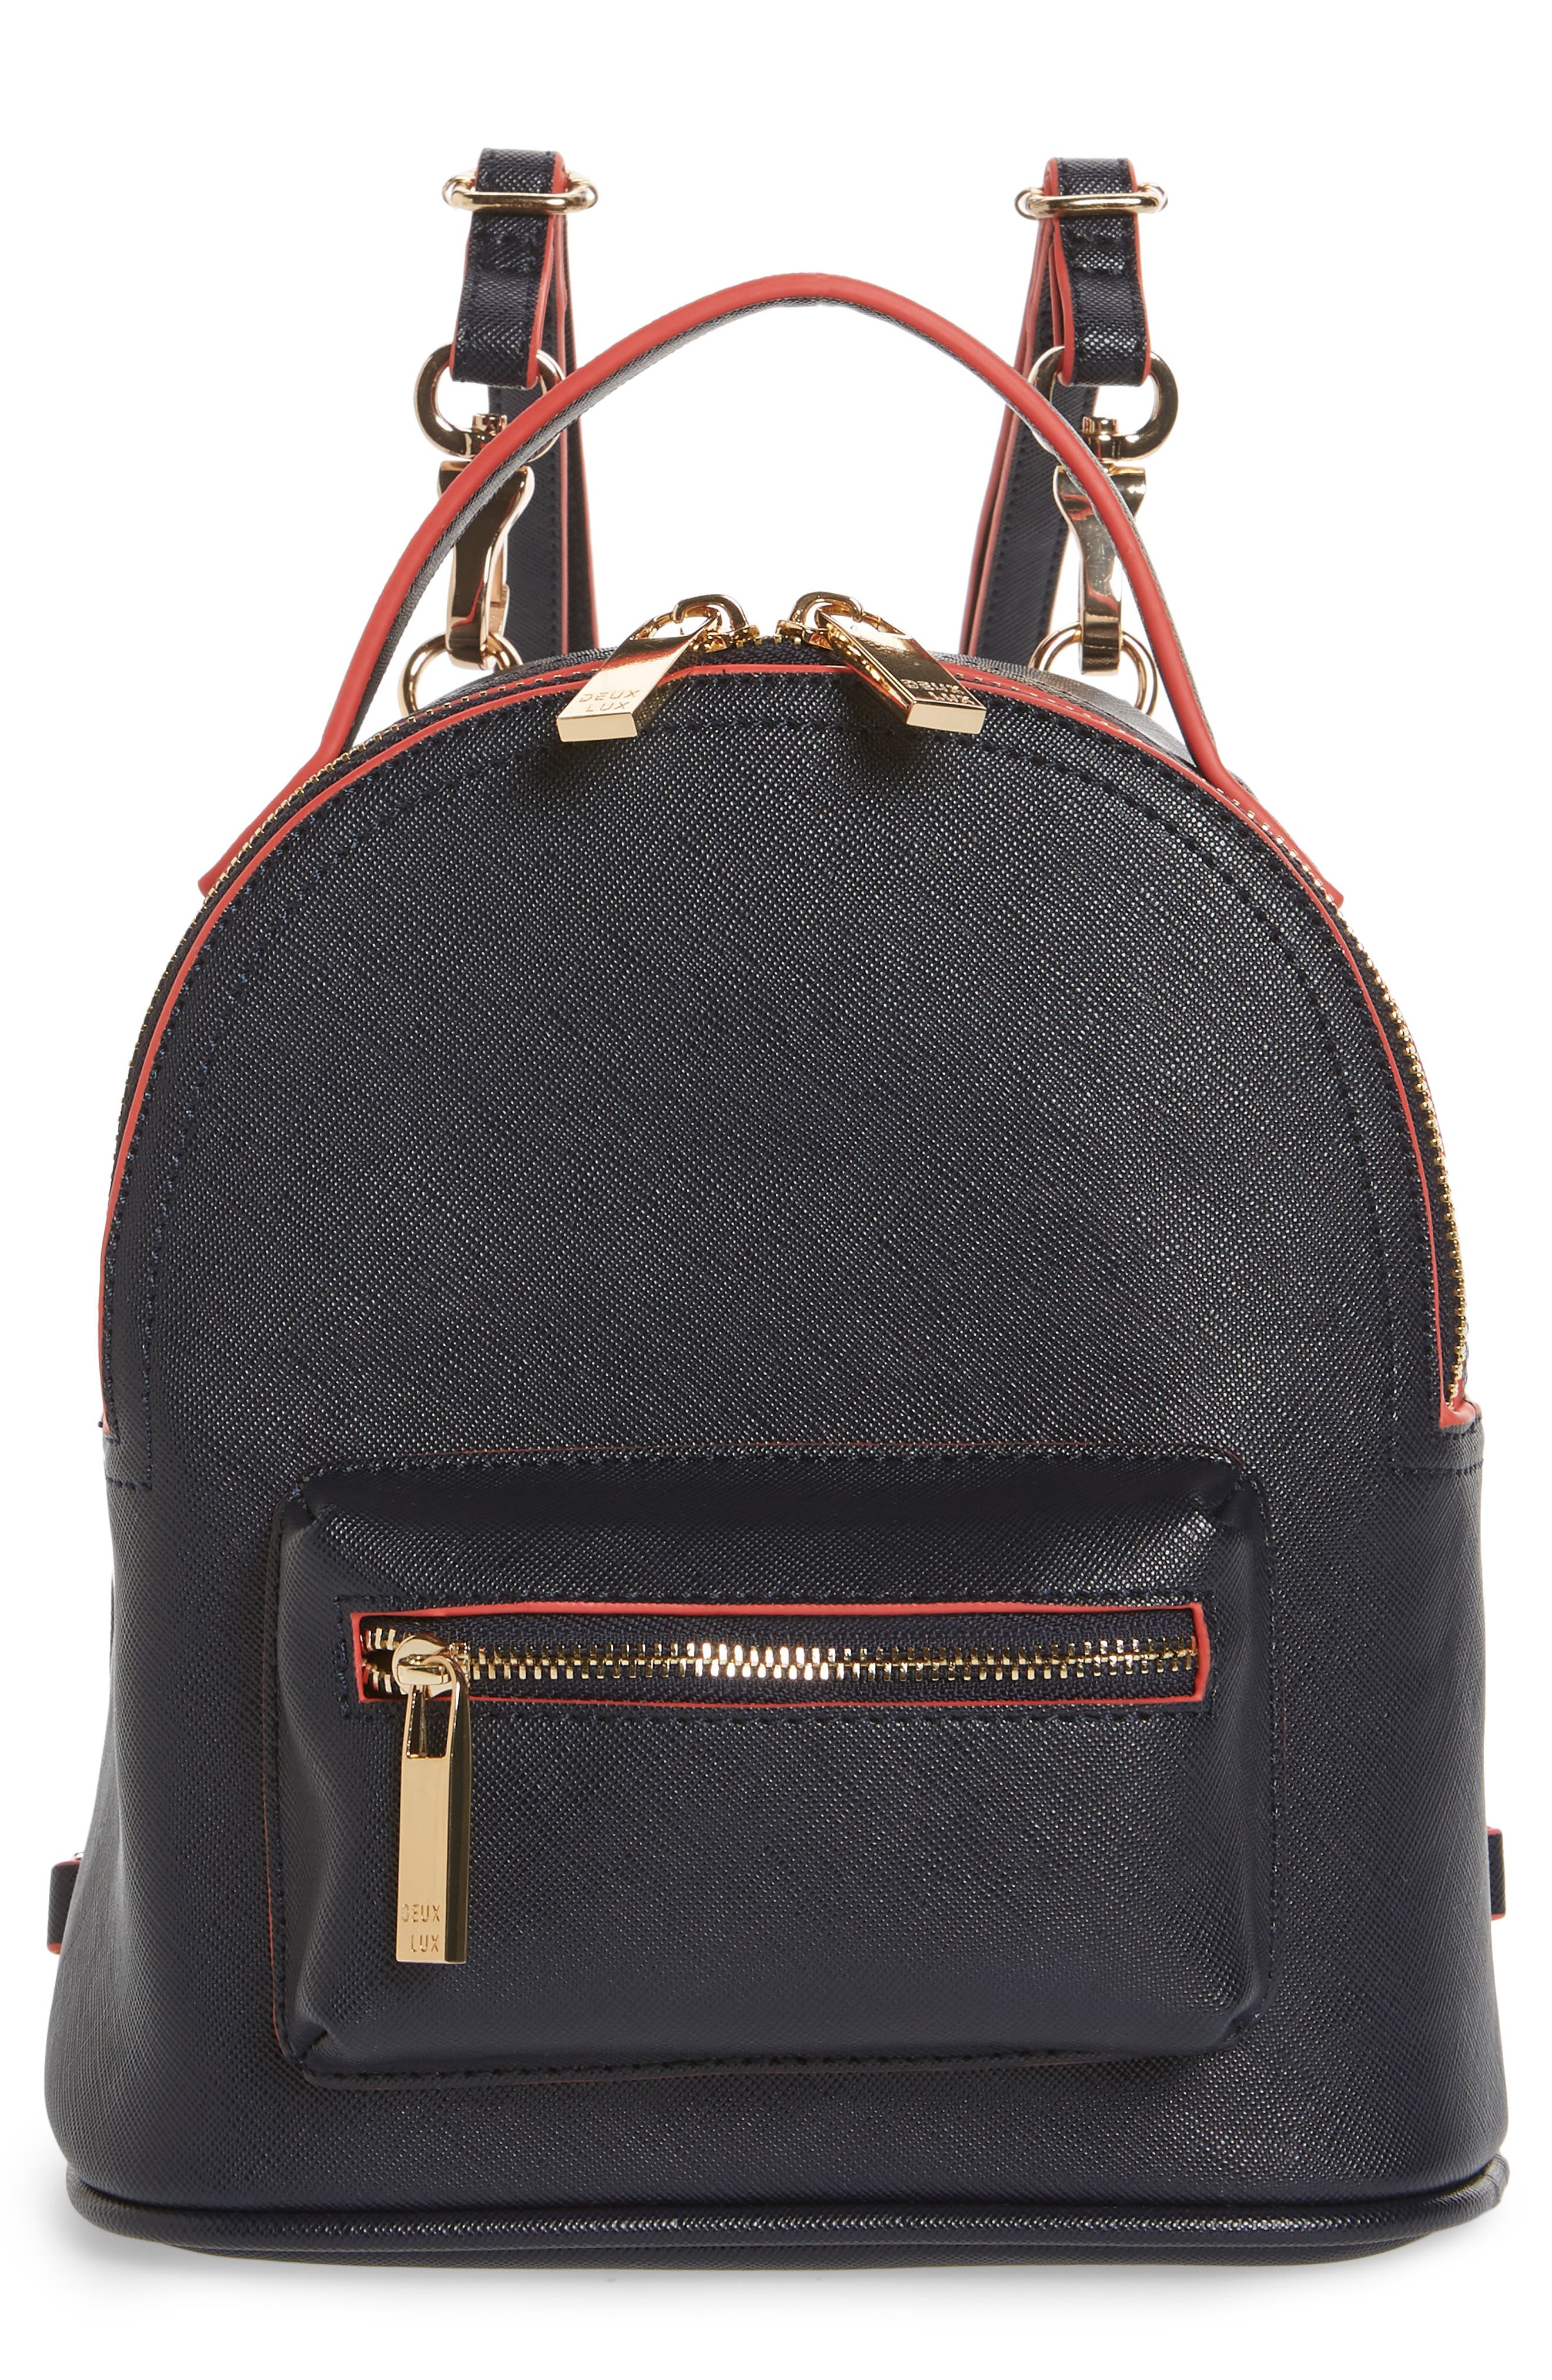 Annabelle Mini Faux Leather Backpack,                             Main thumbnail 1, color,                             490